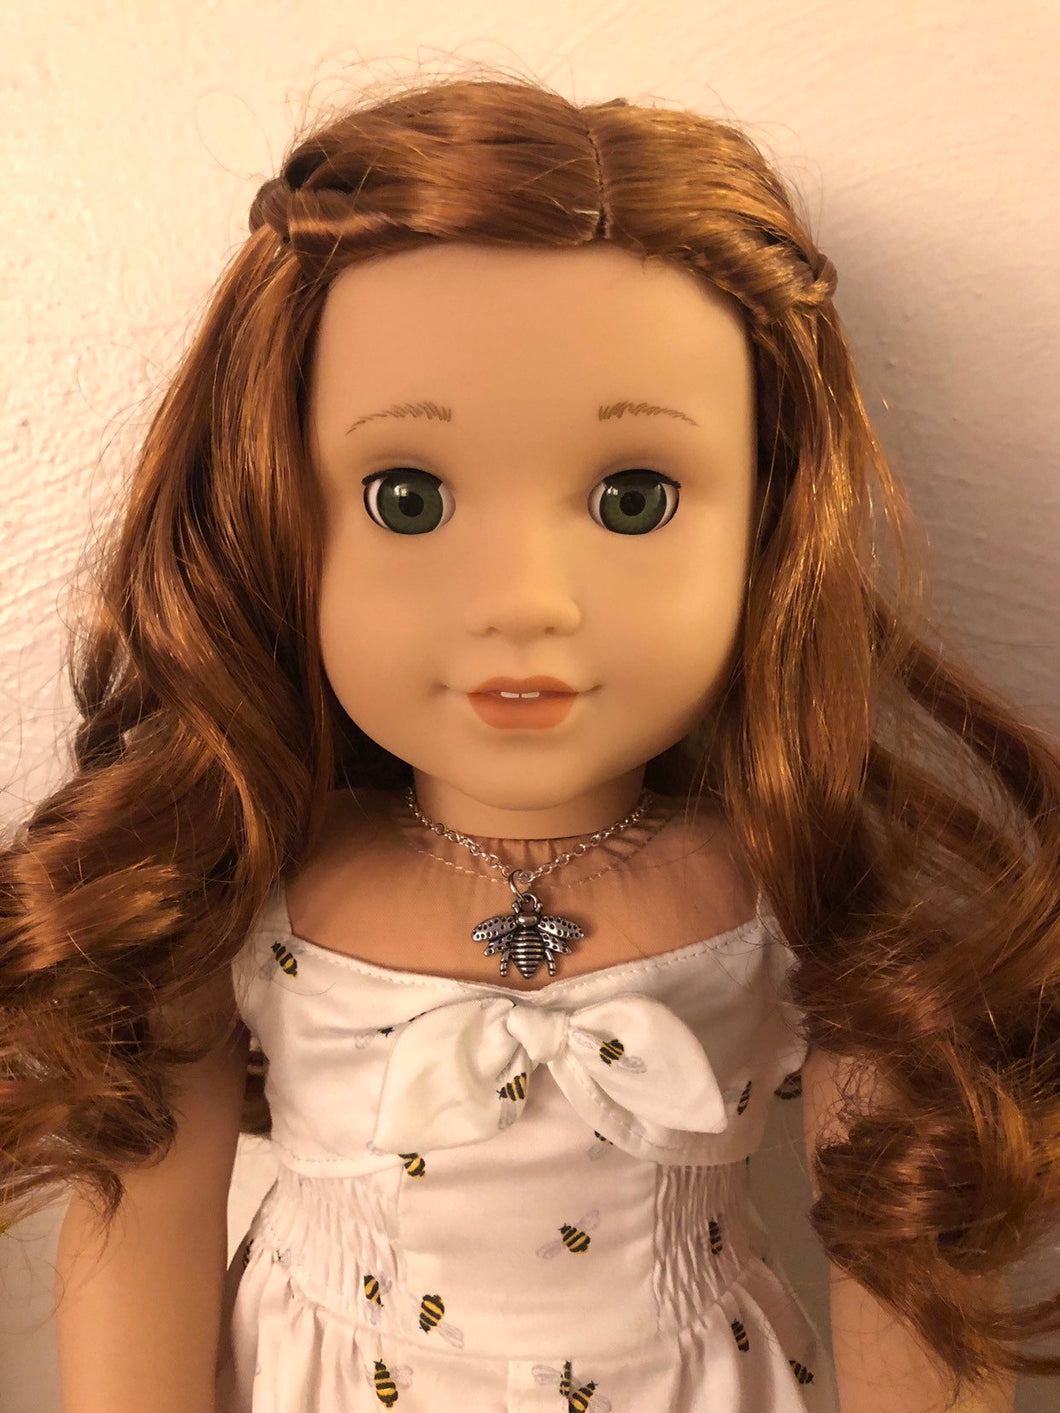 Silver Bumble Bee Necklace for American Girl Blaire Wilson Girl of the Year 2019